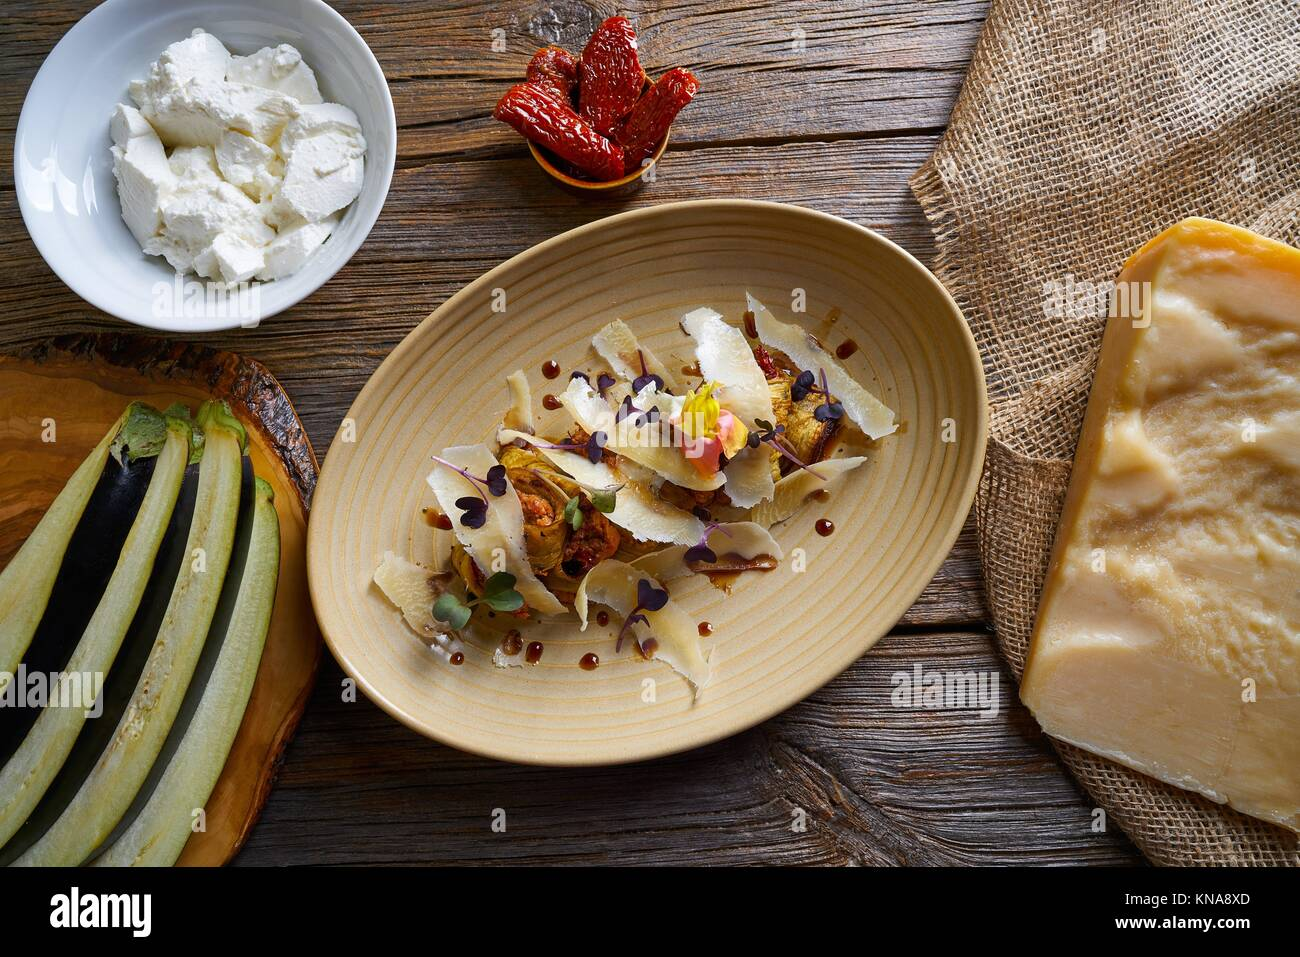 Aubergine and cheese recipe italian food on wood table. - Stock Image